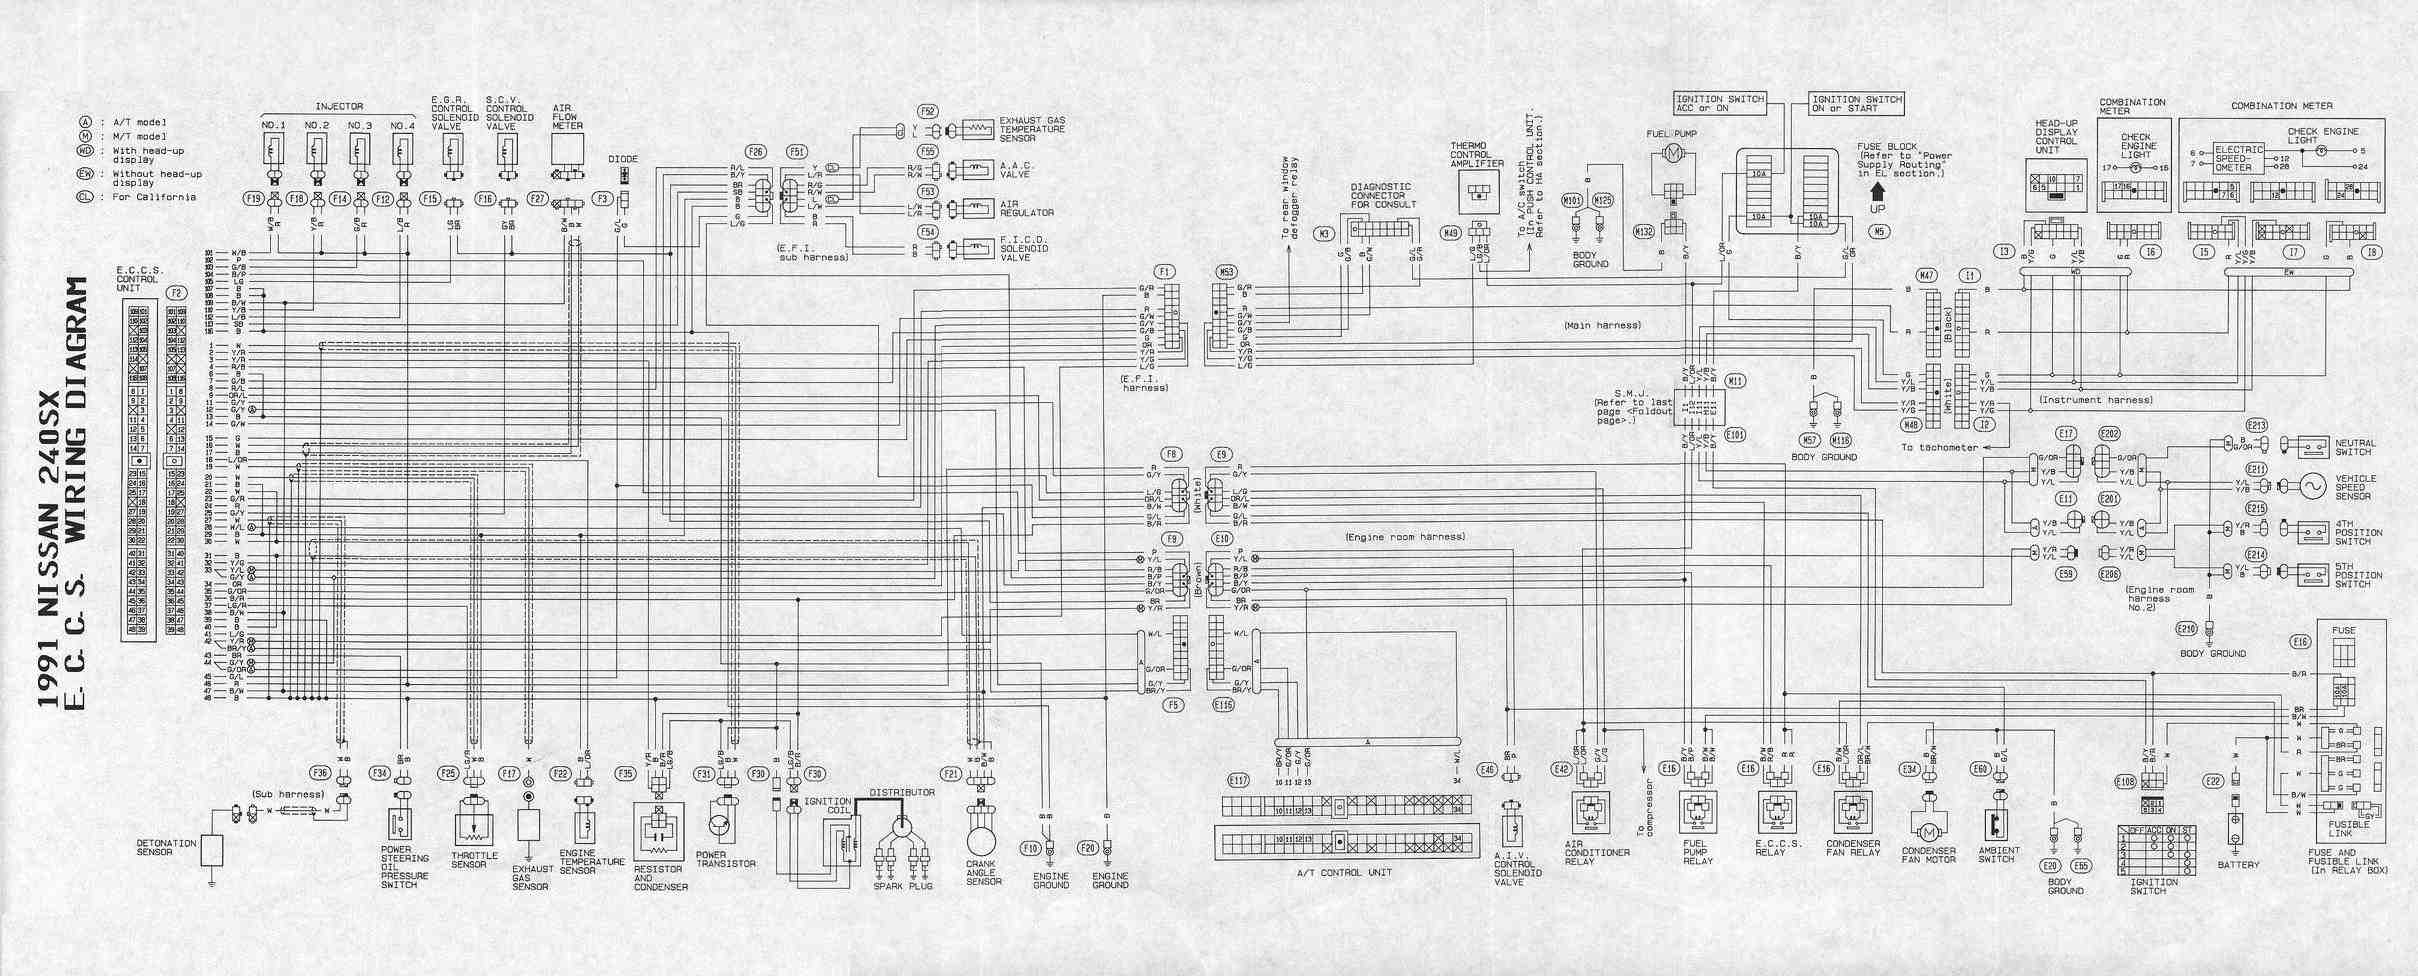 nissan 240sx ka24de wiring harness simple wiring schema 95 nissan pickup wiring diagram nissan 240 wiring harness diagram [ 2418 x 976 Pixel ]